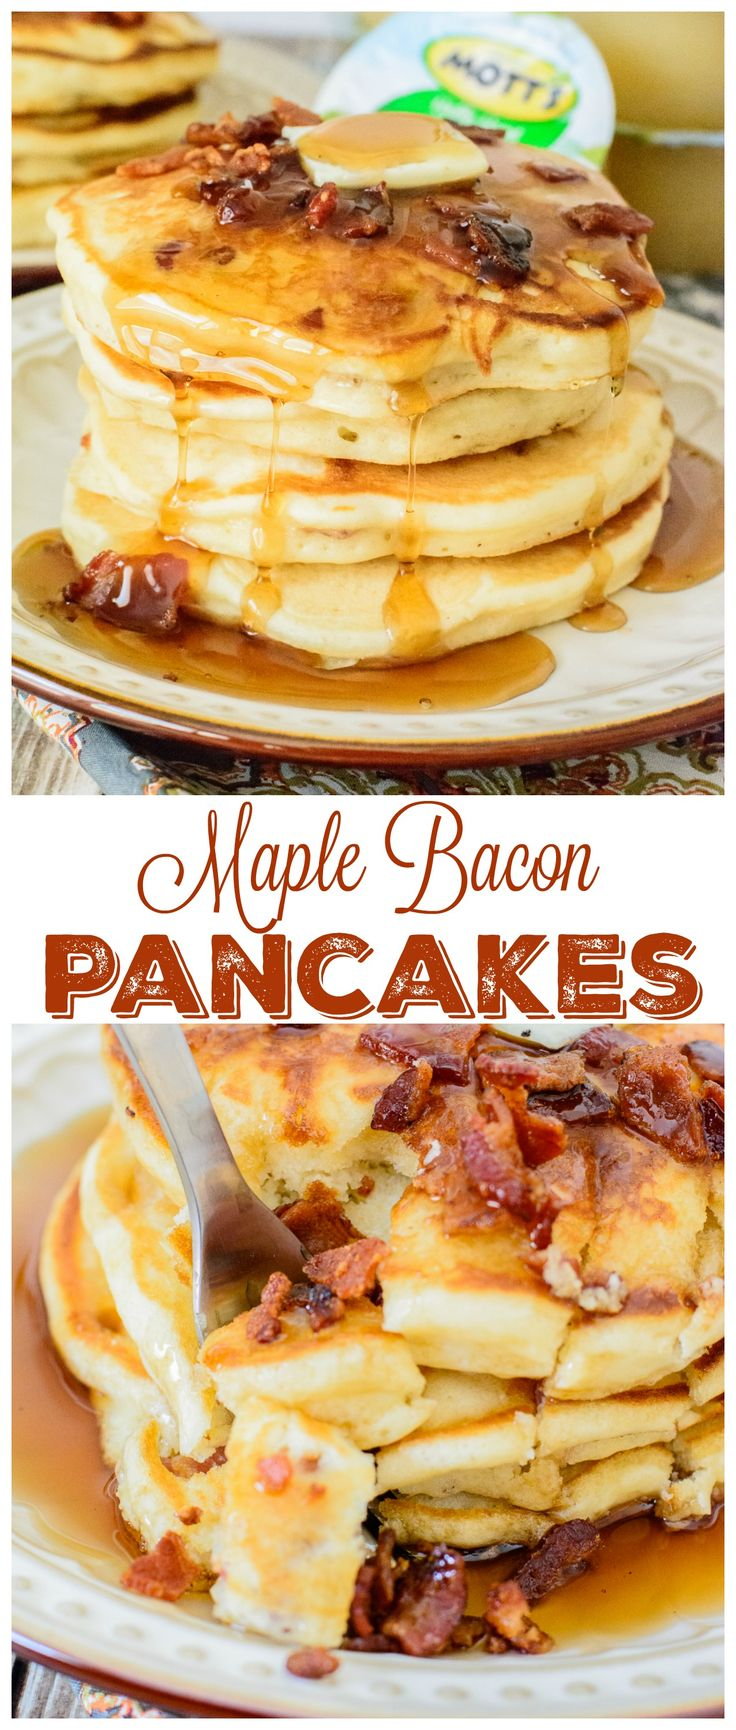 Maple Bacon Pancakes. Light and fluffy pancakes with pure maple syrup and crispy bacon. This pancake recipe is the king of all pancake recipes. You will love every bite!